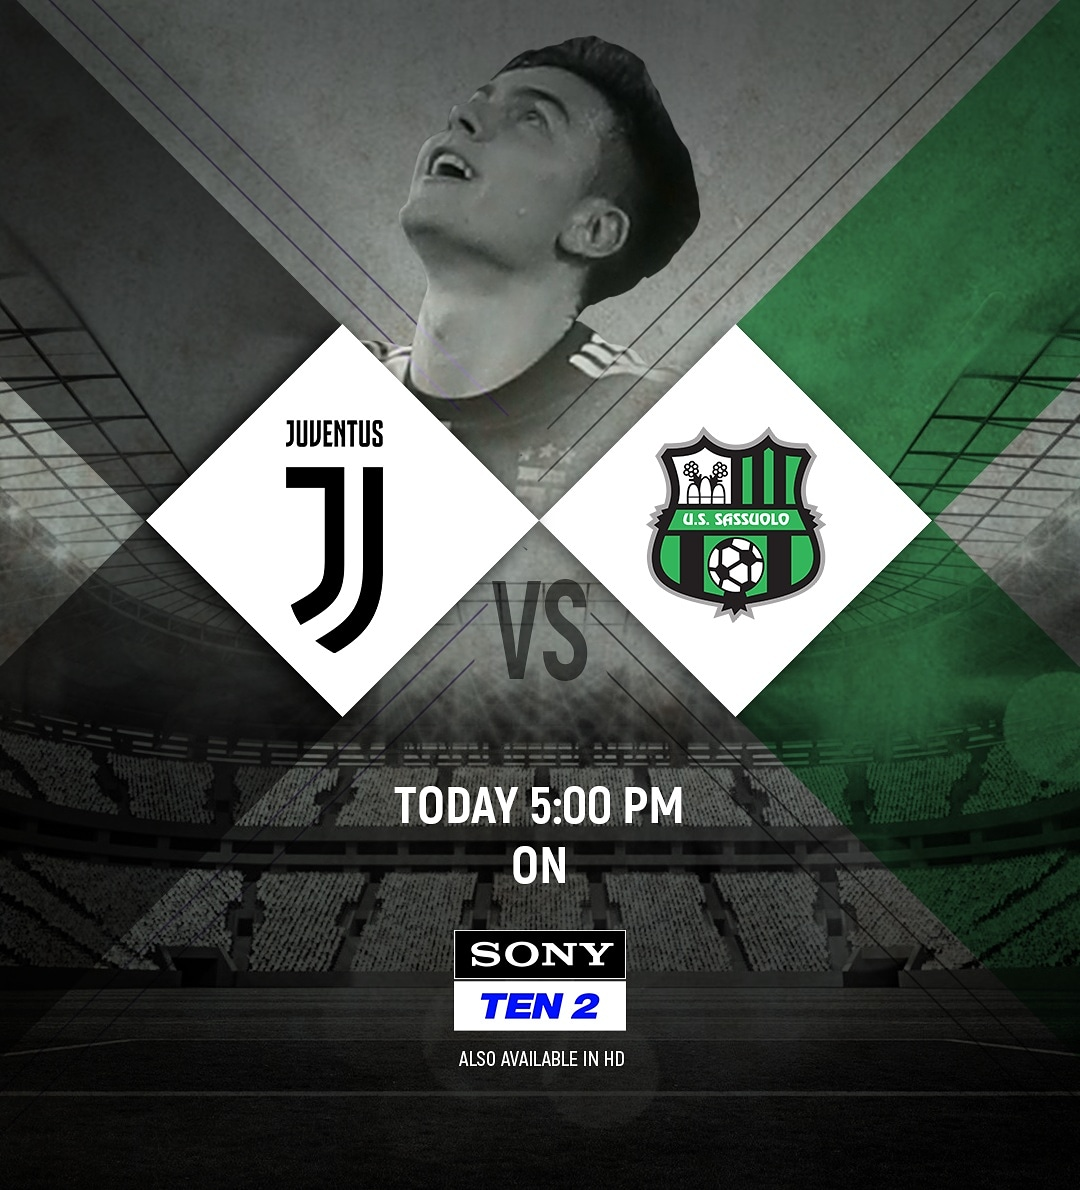 Following a decent Champions League week, Juventus are back in action in Serie A.  Watch them LIVE only on SONY TEN 2 at 5:30 PM. . . . #SerieA  #SonySports  #paulodybala  #juventus  #juve  #cristianoronaldo  #football<br>http://pic.twitter.com/EaXBw4l02j